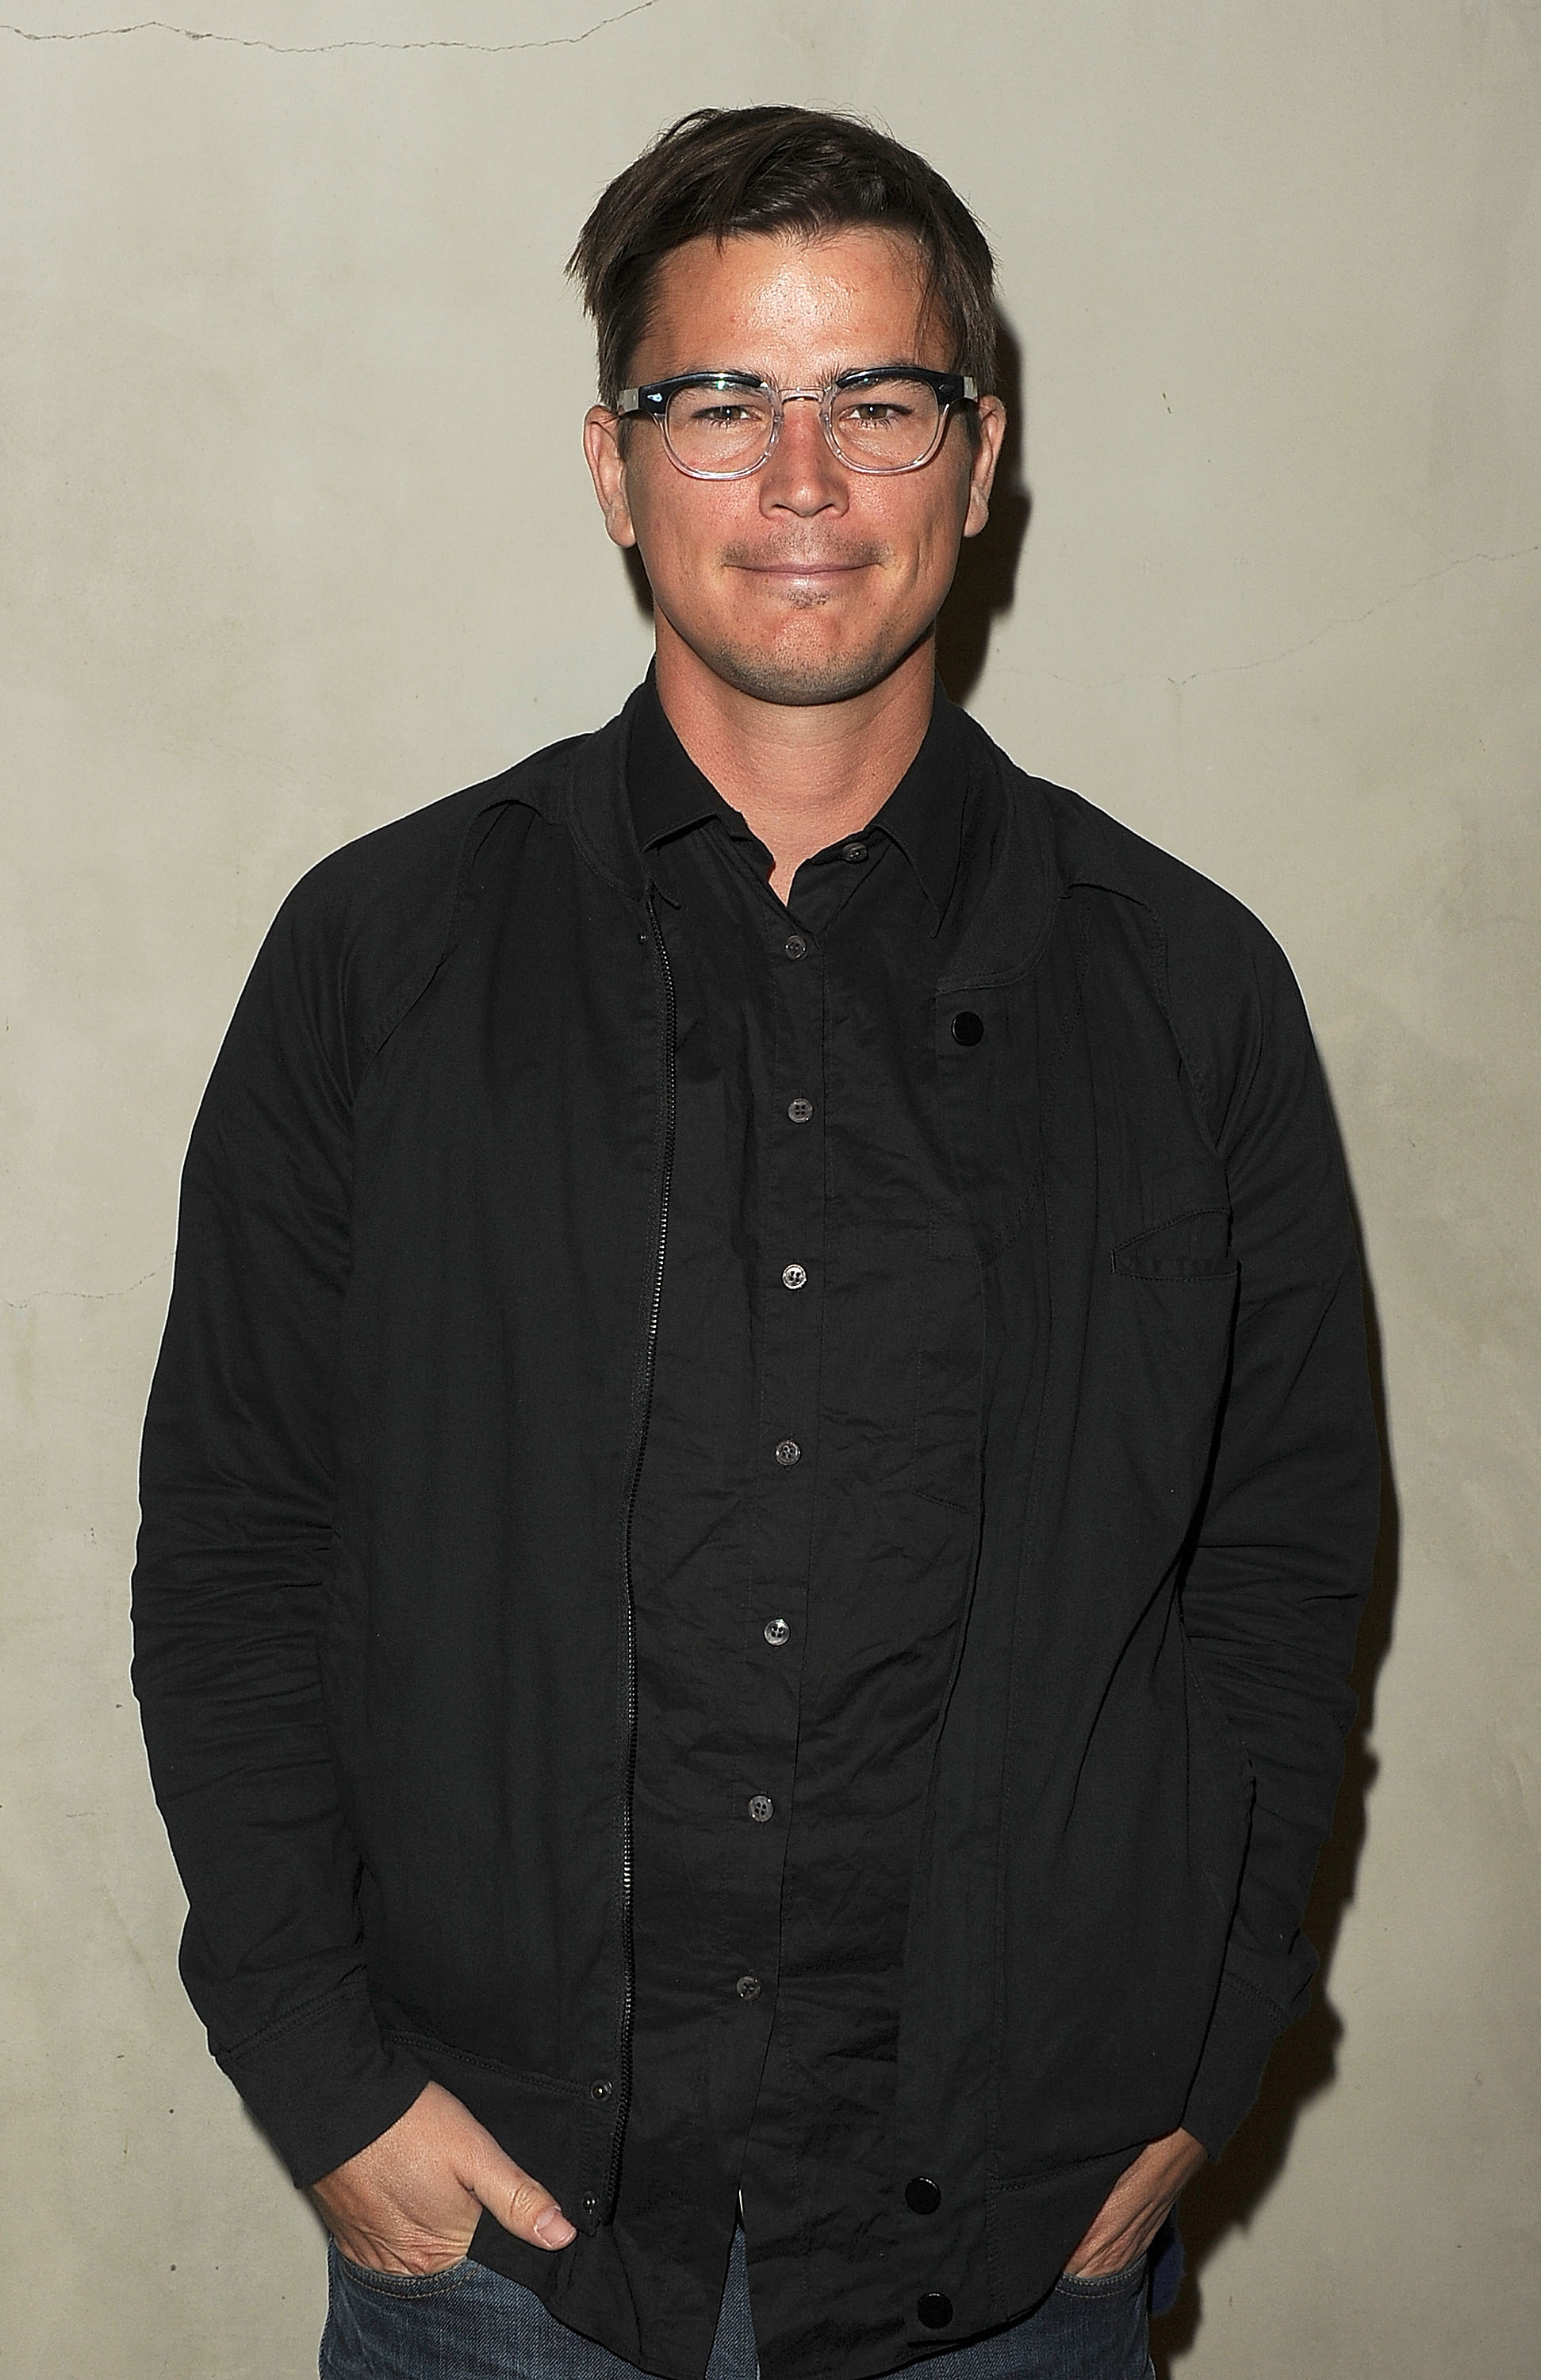 Josh Hartnett put his hands in his pockets at an event in LA.